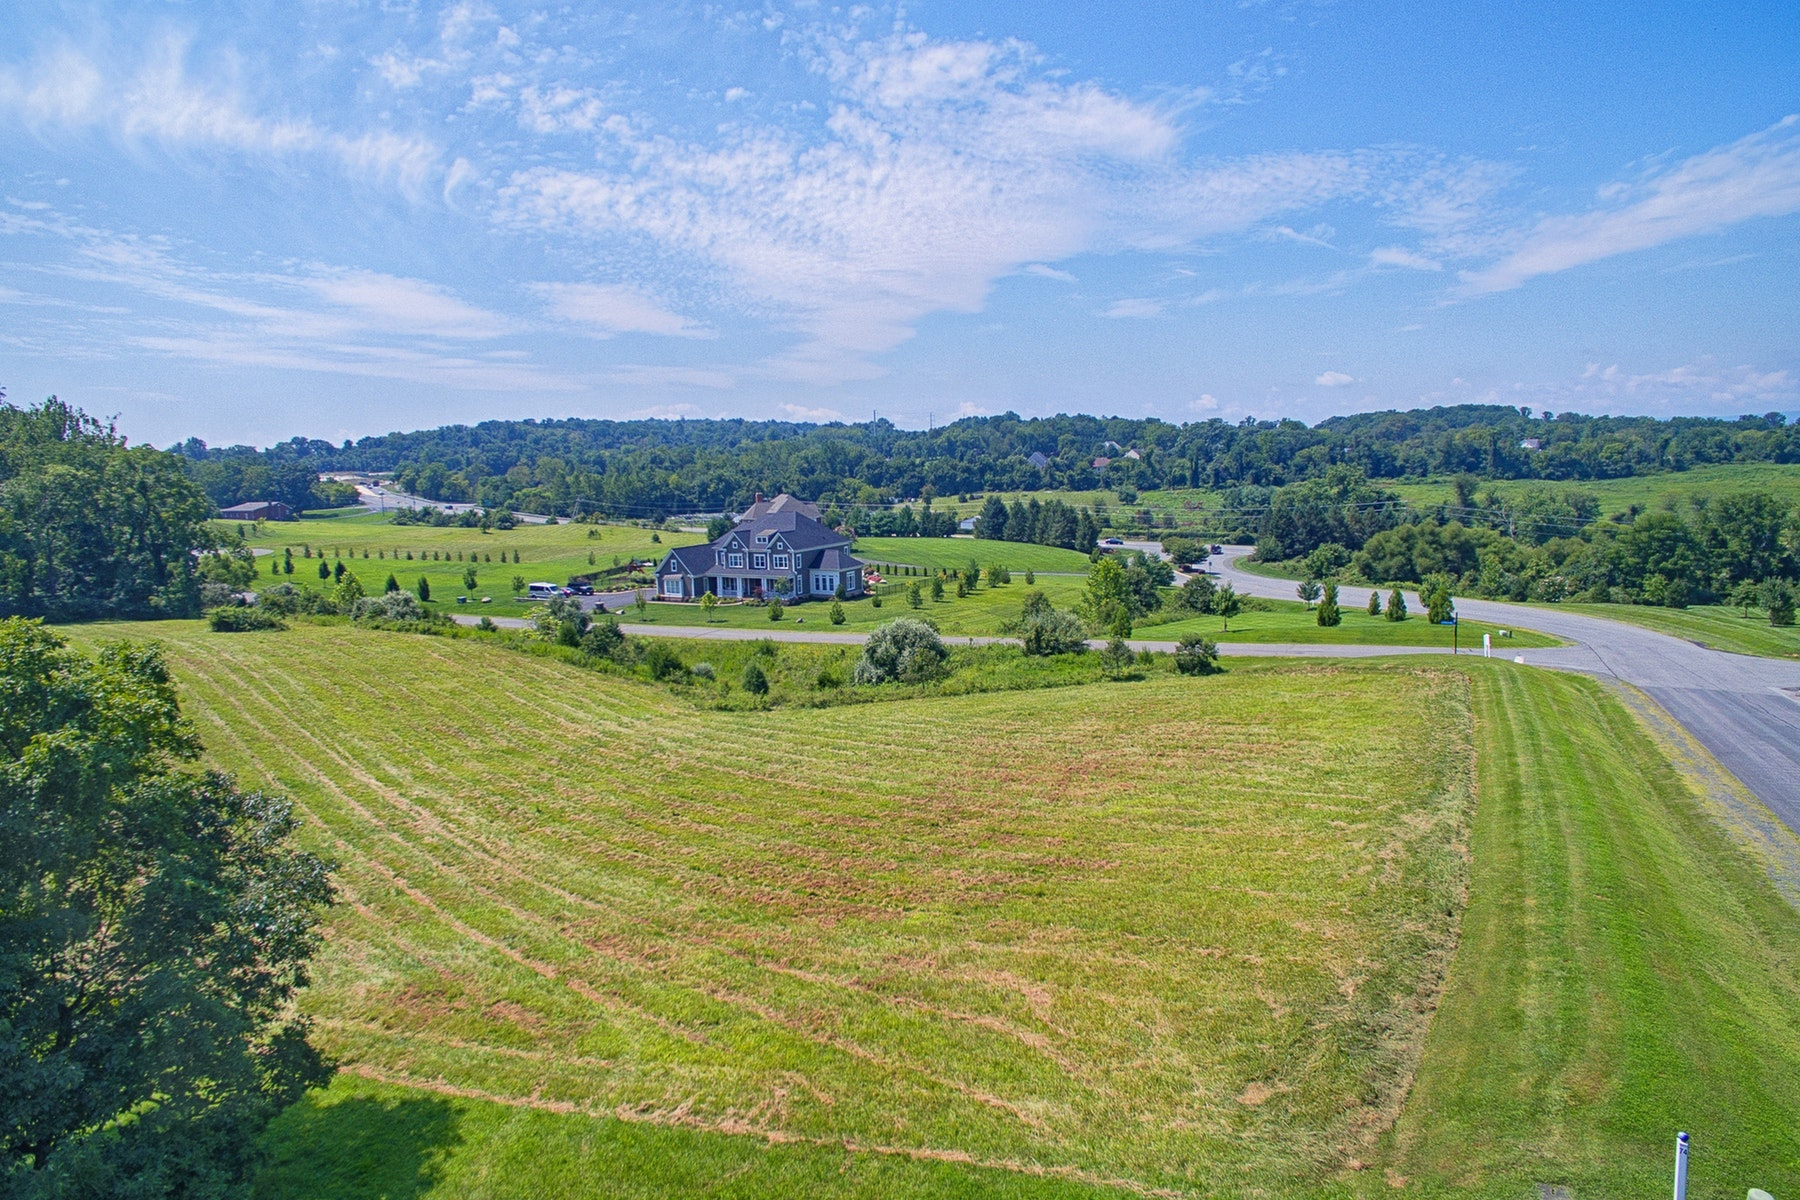 Majestic Beacon Hill Lot with Mountain Views 40221 Beacon Hill Dr, Leesburg, Virginia 20176 Vereinigte Staaten